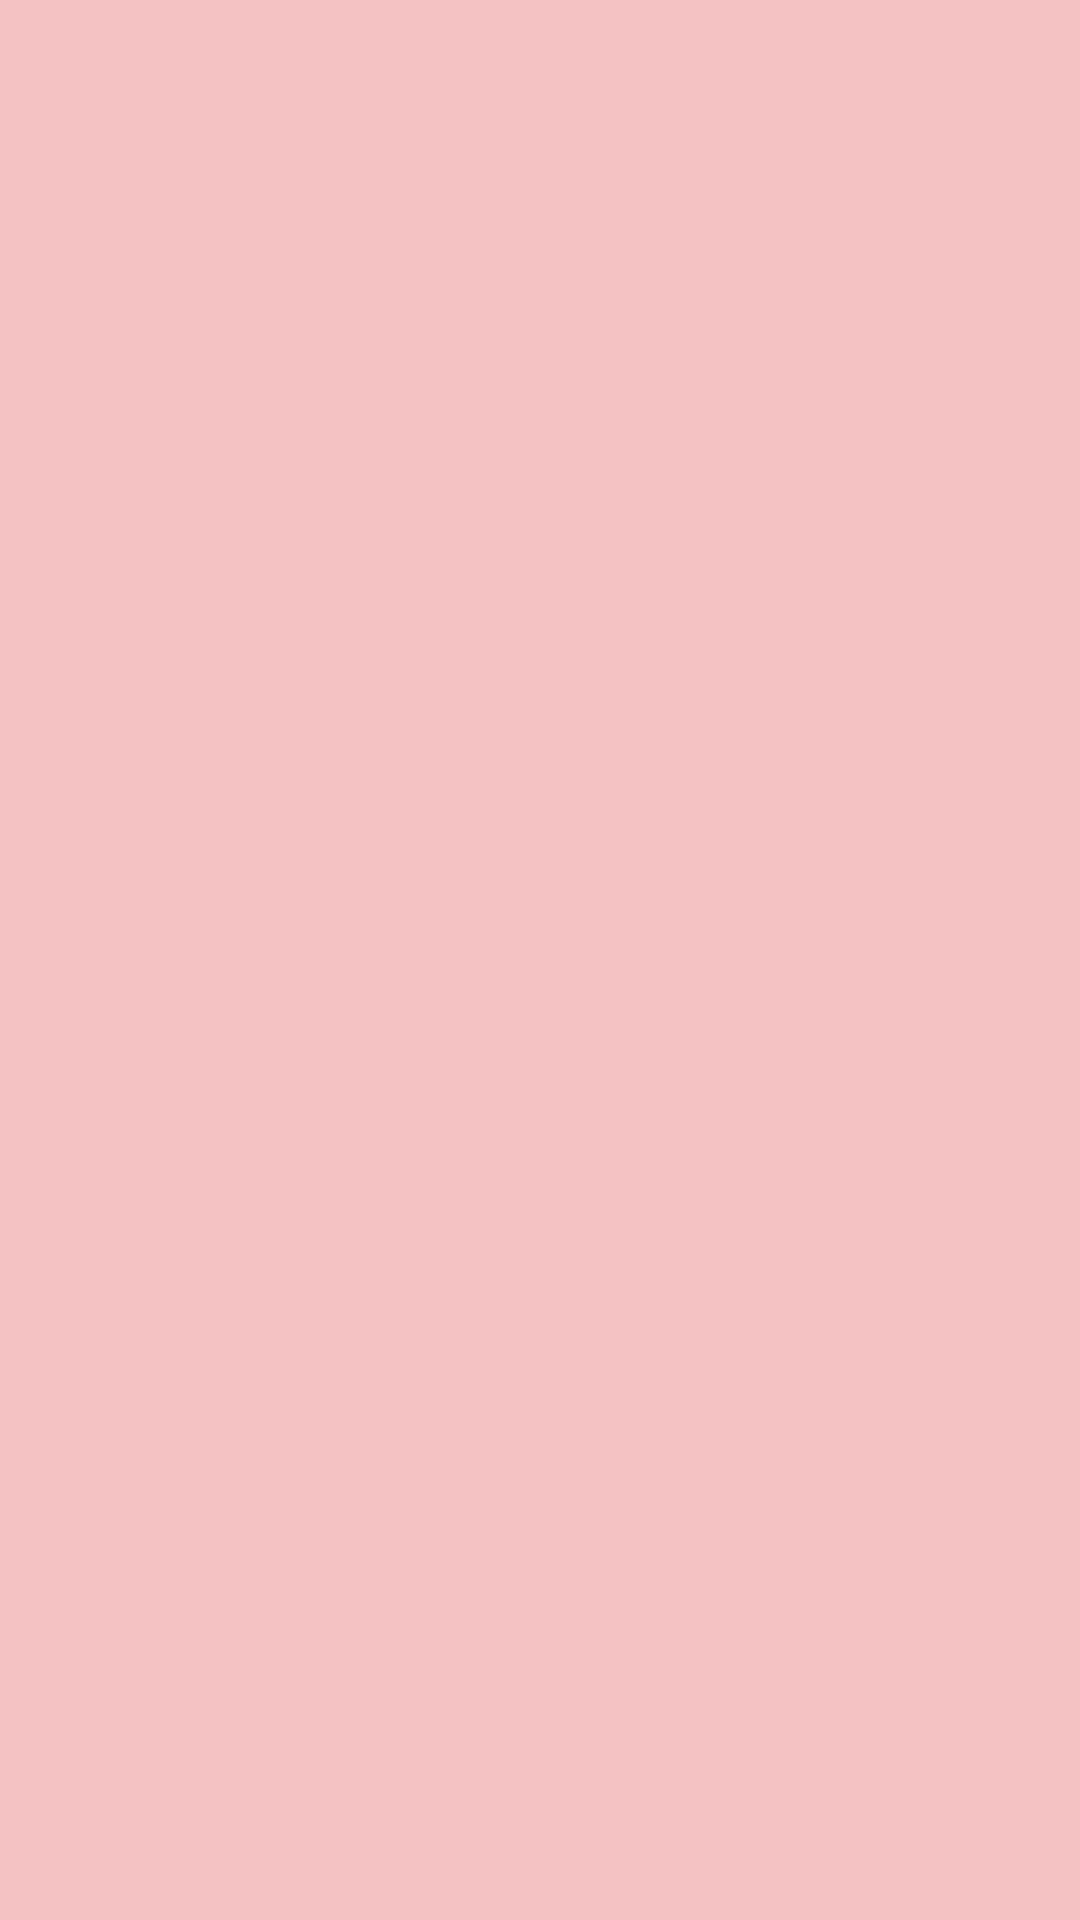 1080x1920 Baby Pink Solid Color Background